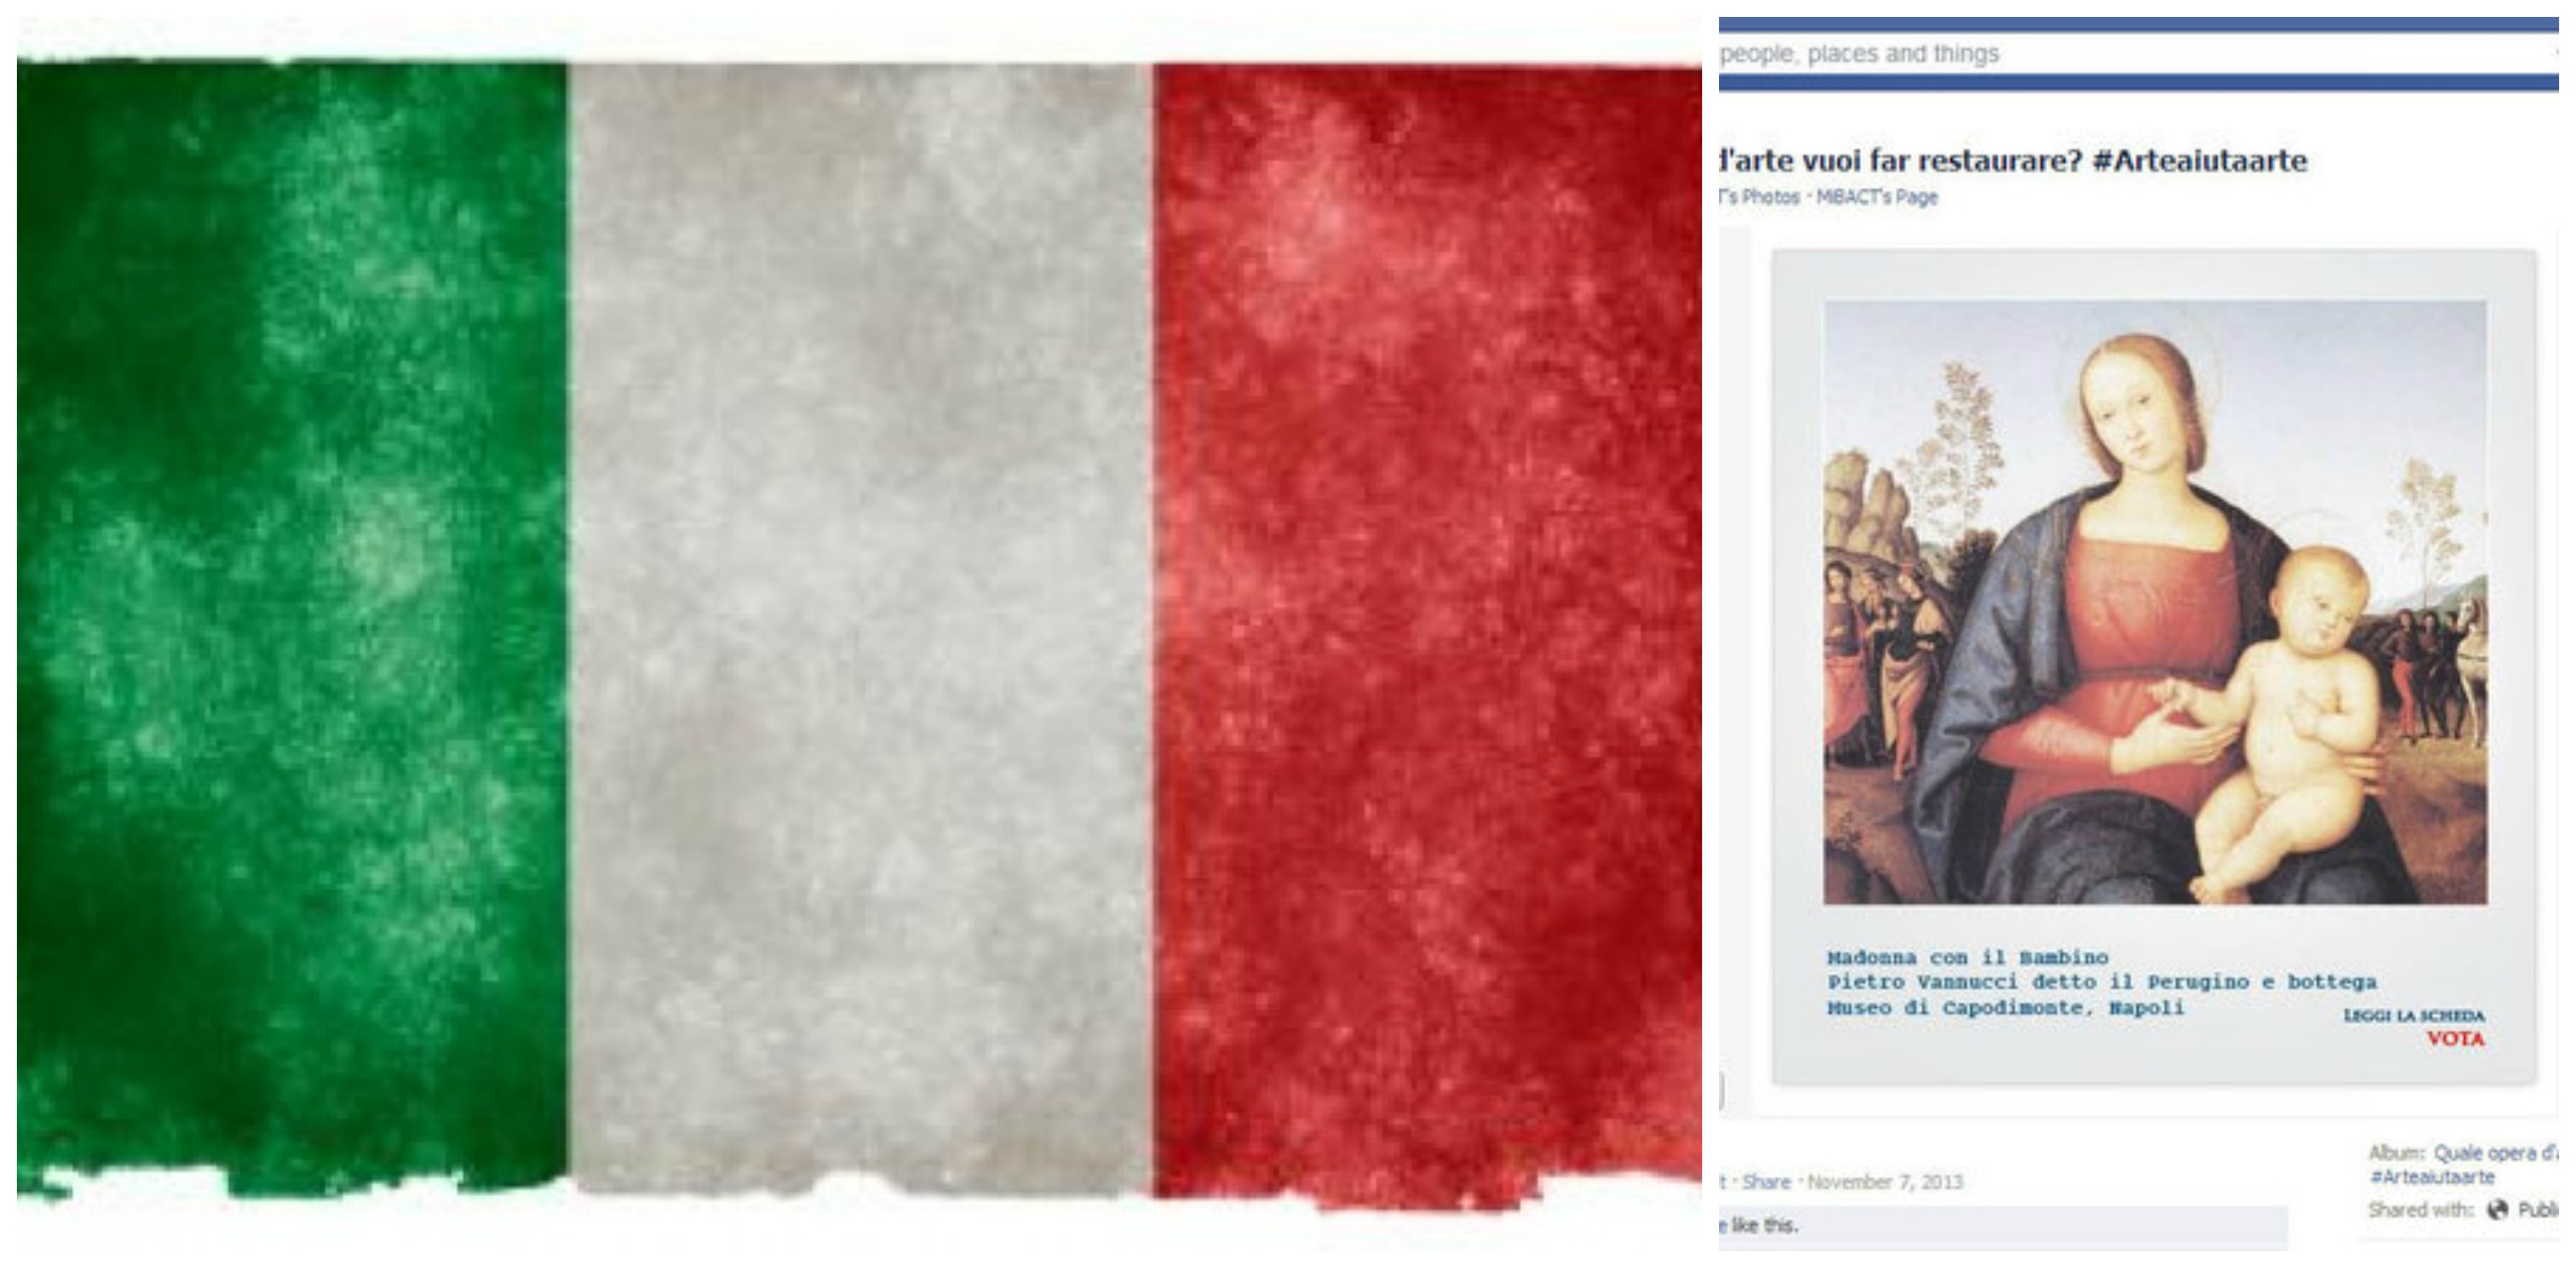 Facebook Referendums Saving Italy's Art Heritage?